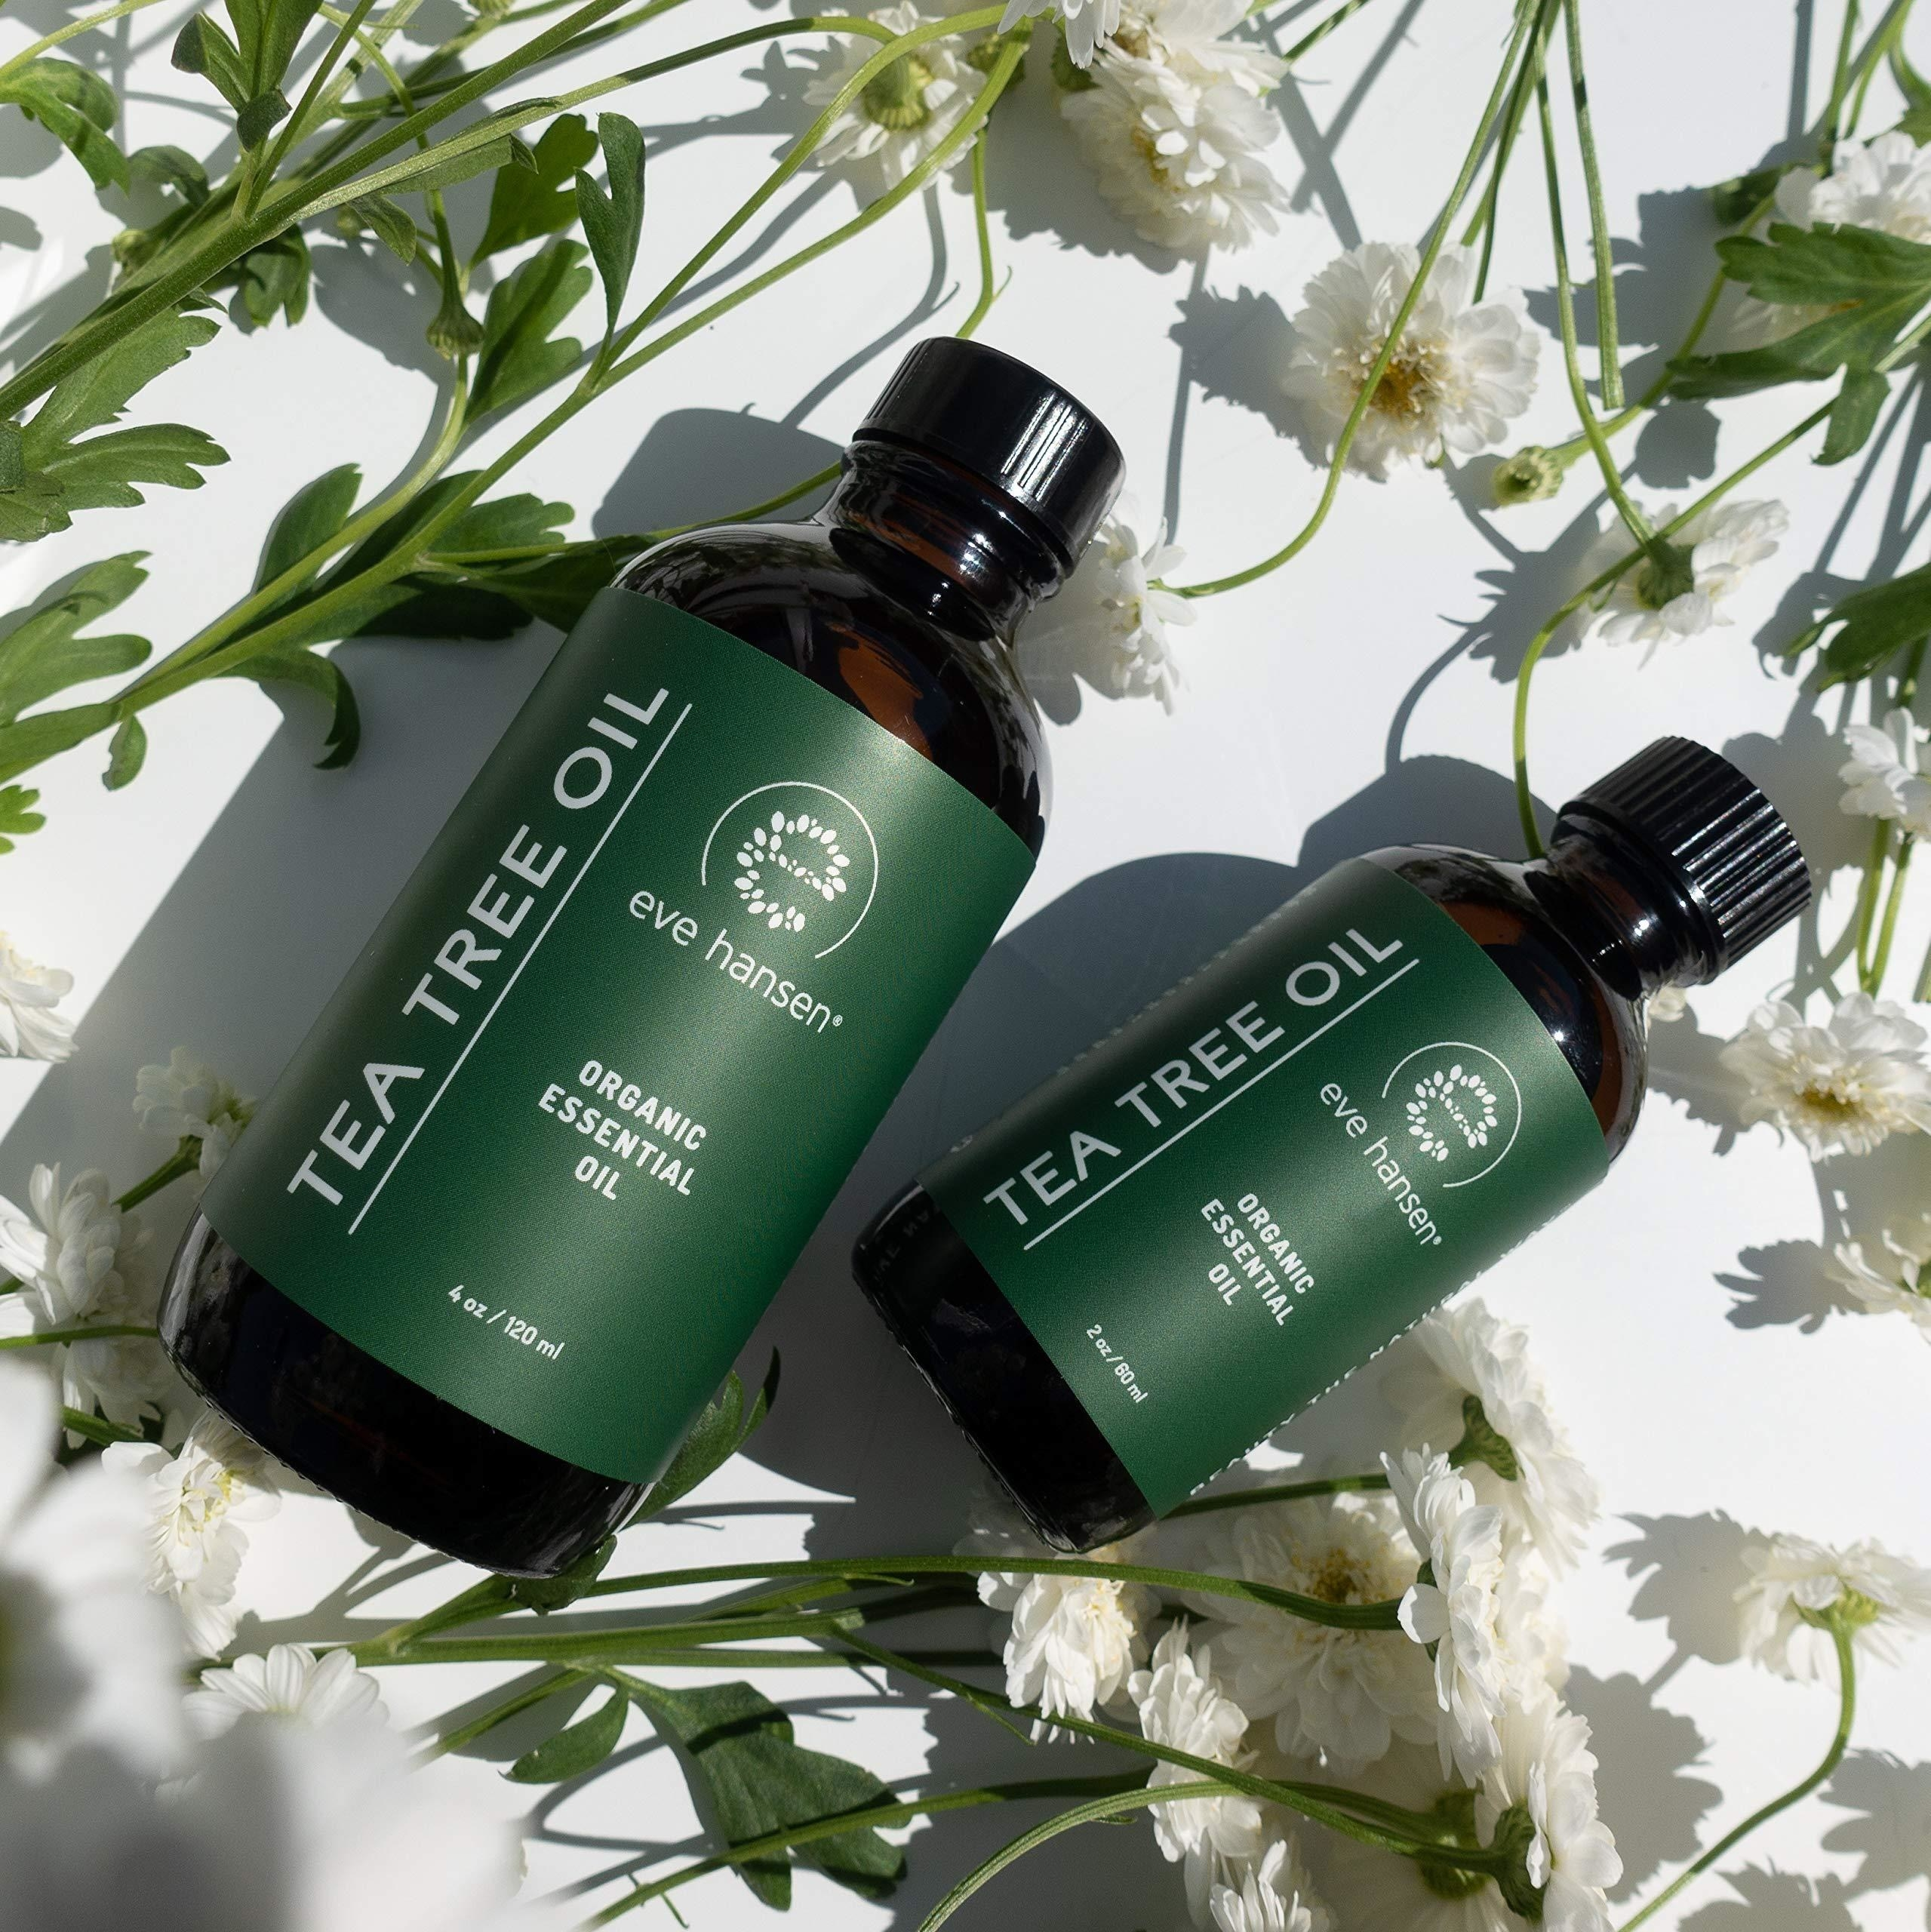 two different sizes of the tea tree oil with flowers in the background